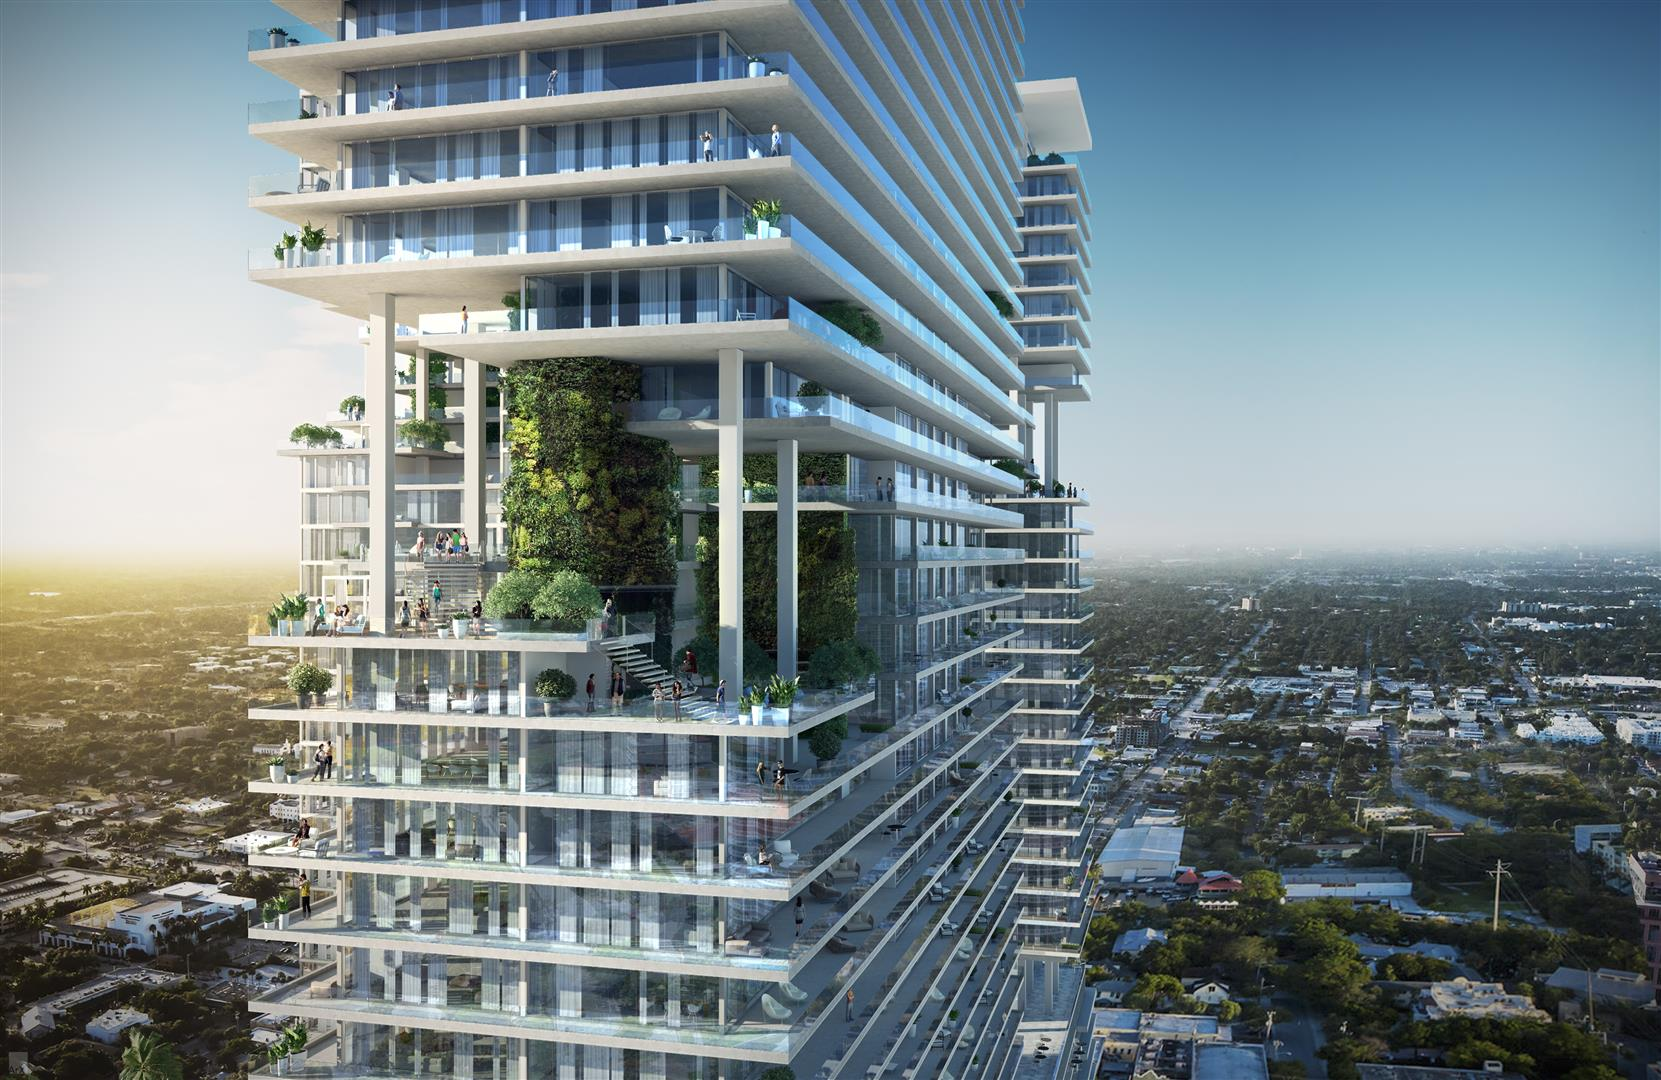 PMG closes On $29m Las Olas Riverfront Site, Apartments & Retail Planned